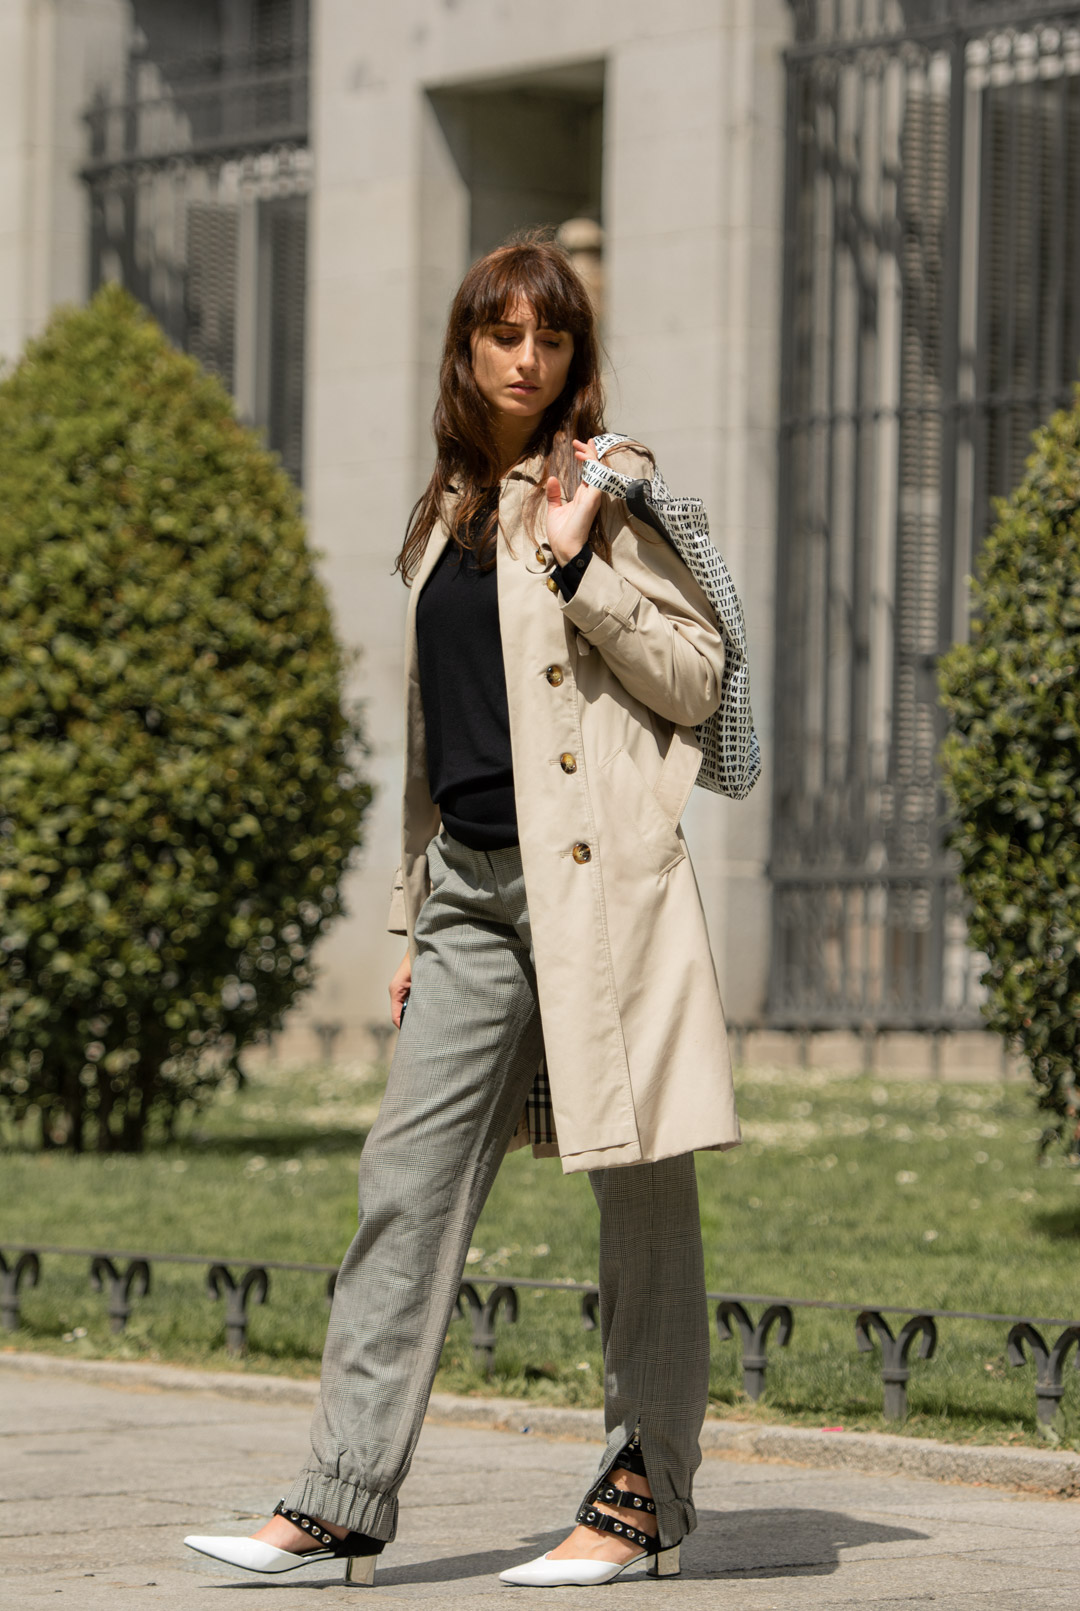 mayte-street-style-burberry-web-06